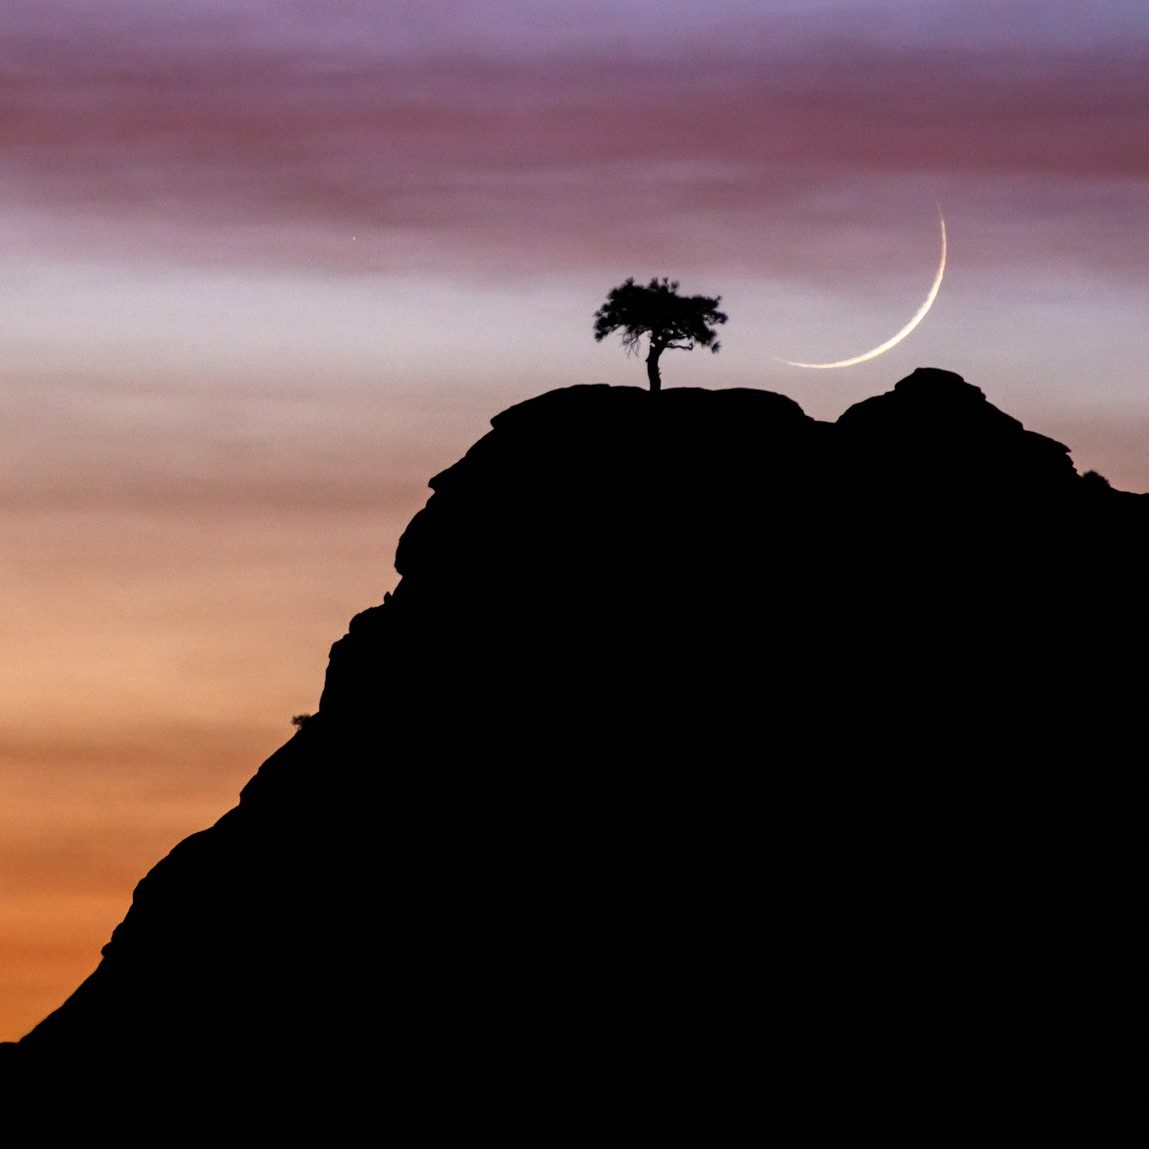 Zion National Park with crescent moon and a lone tree at sunset. Zion photo tours and zion photo workshop.